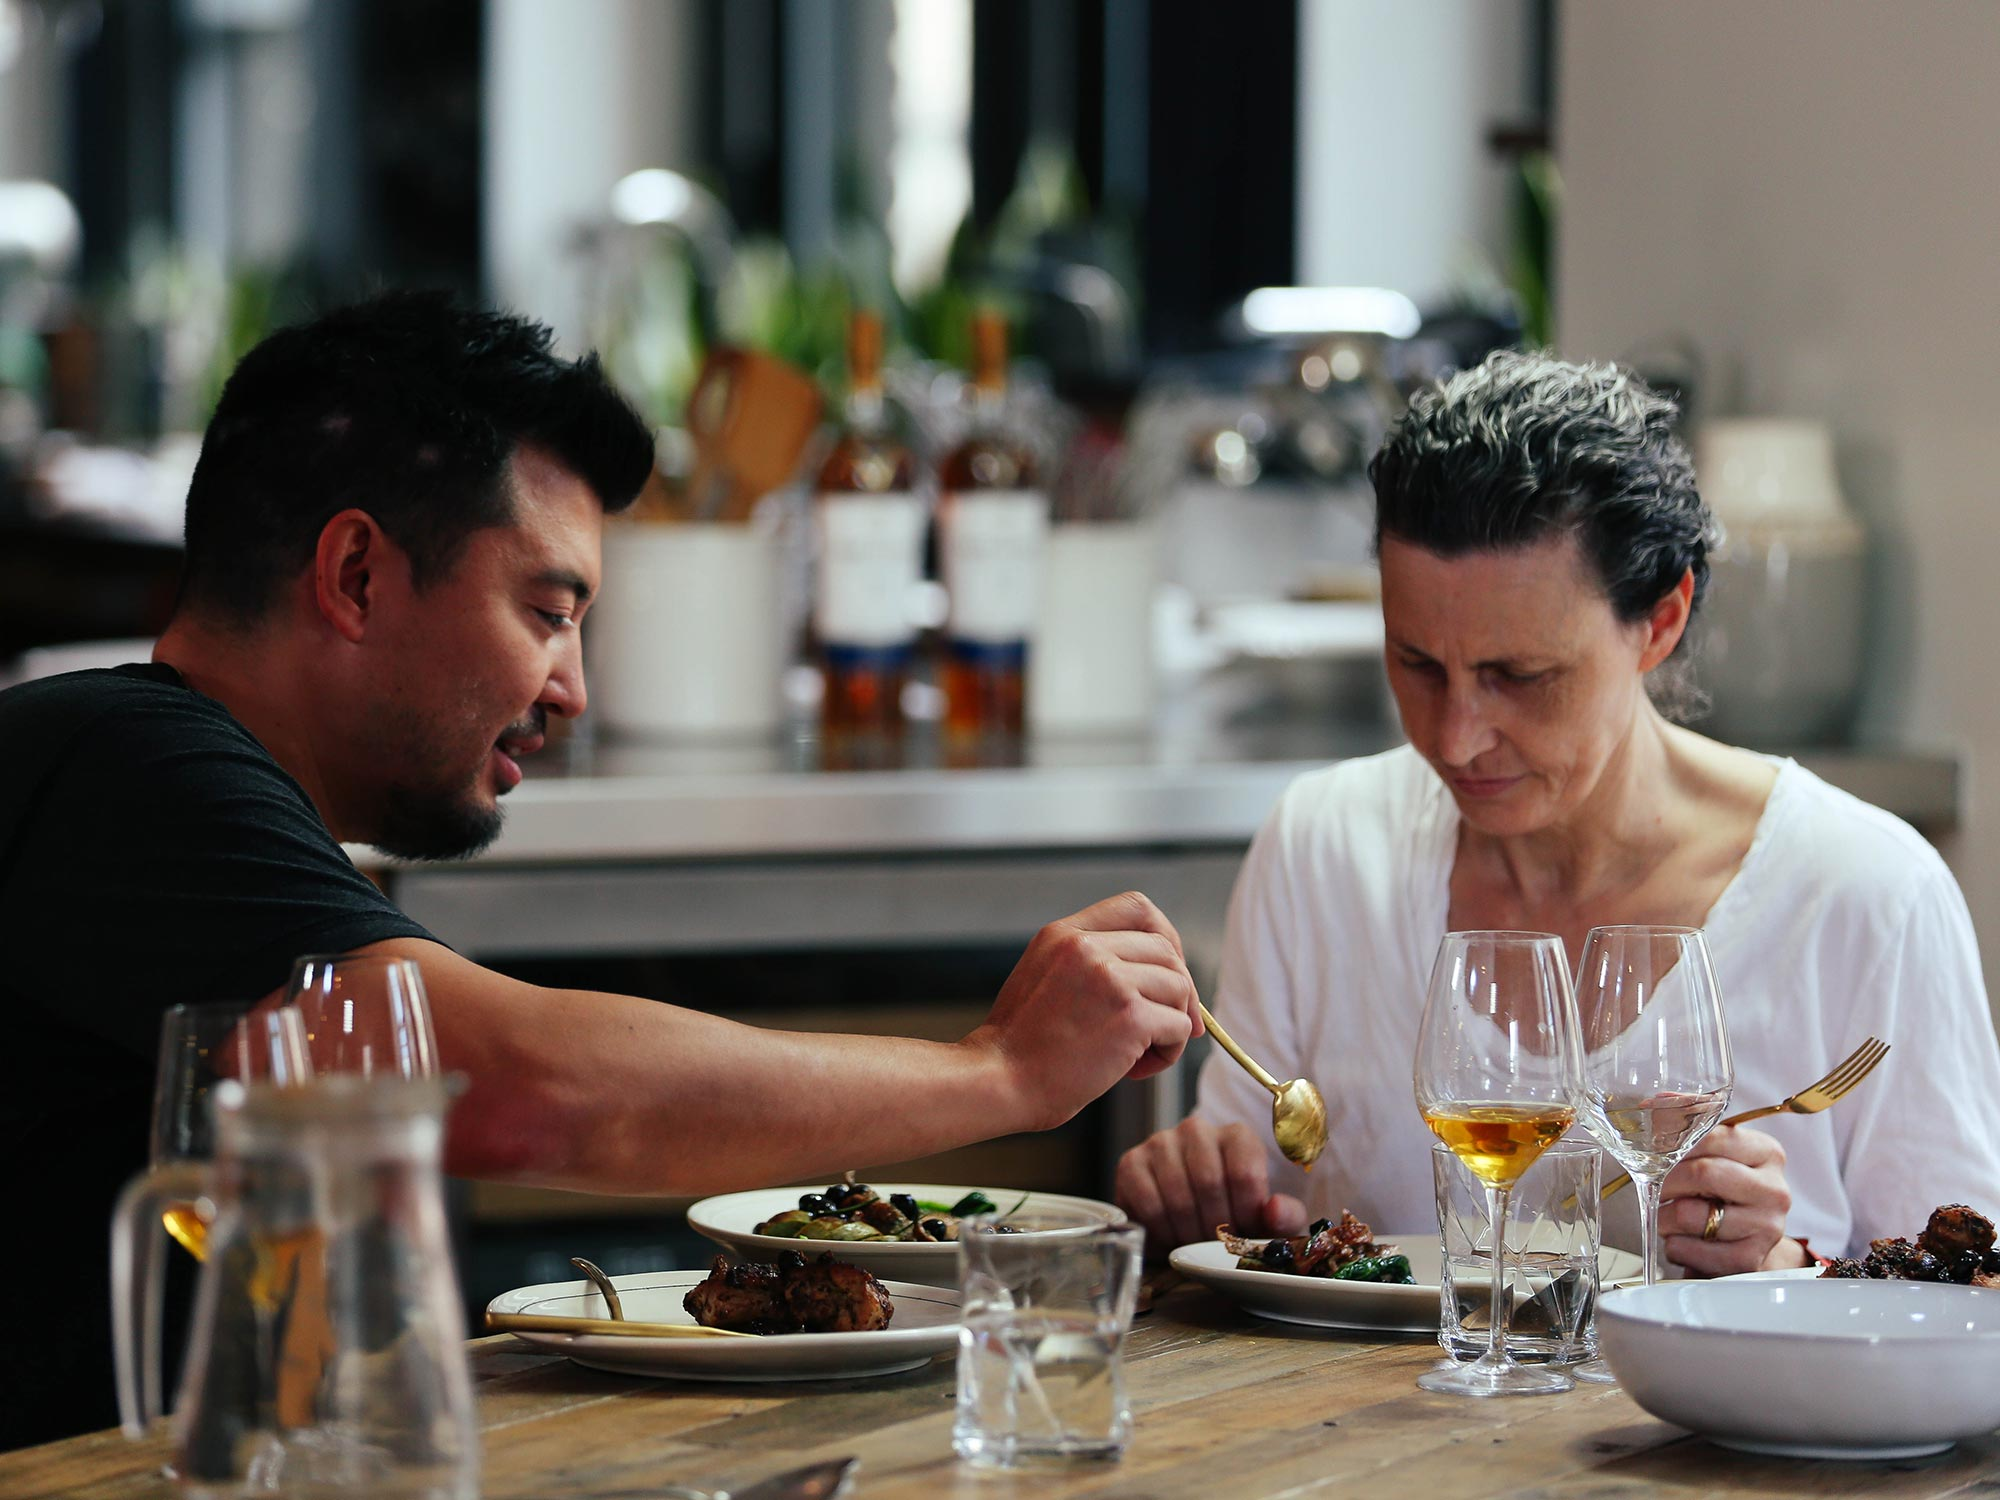 The Battle of the Spaghettis: Traditional Meets Experimental